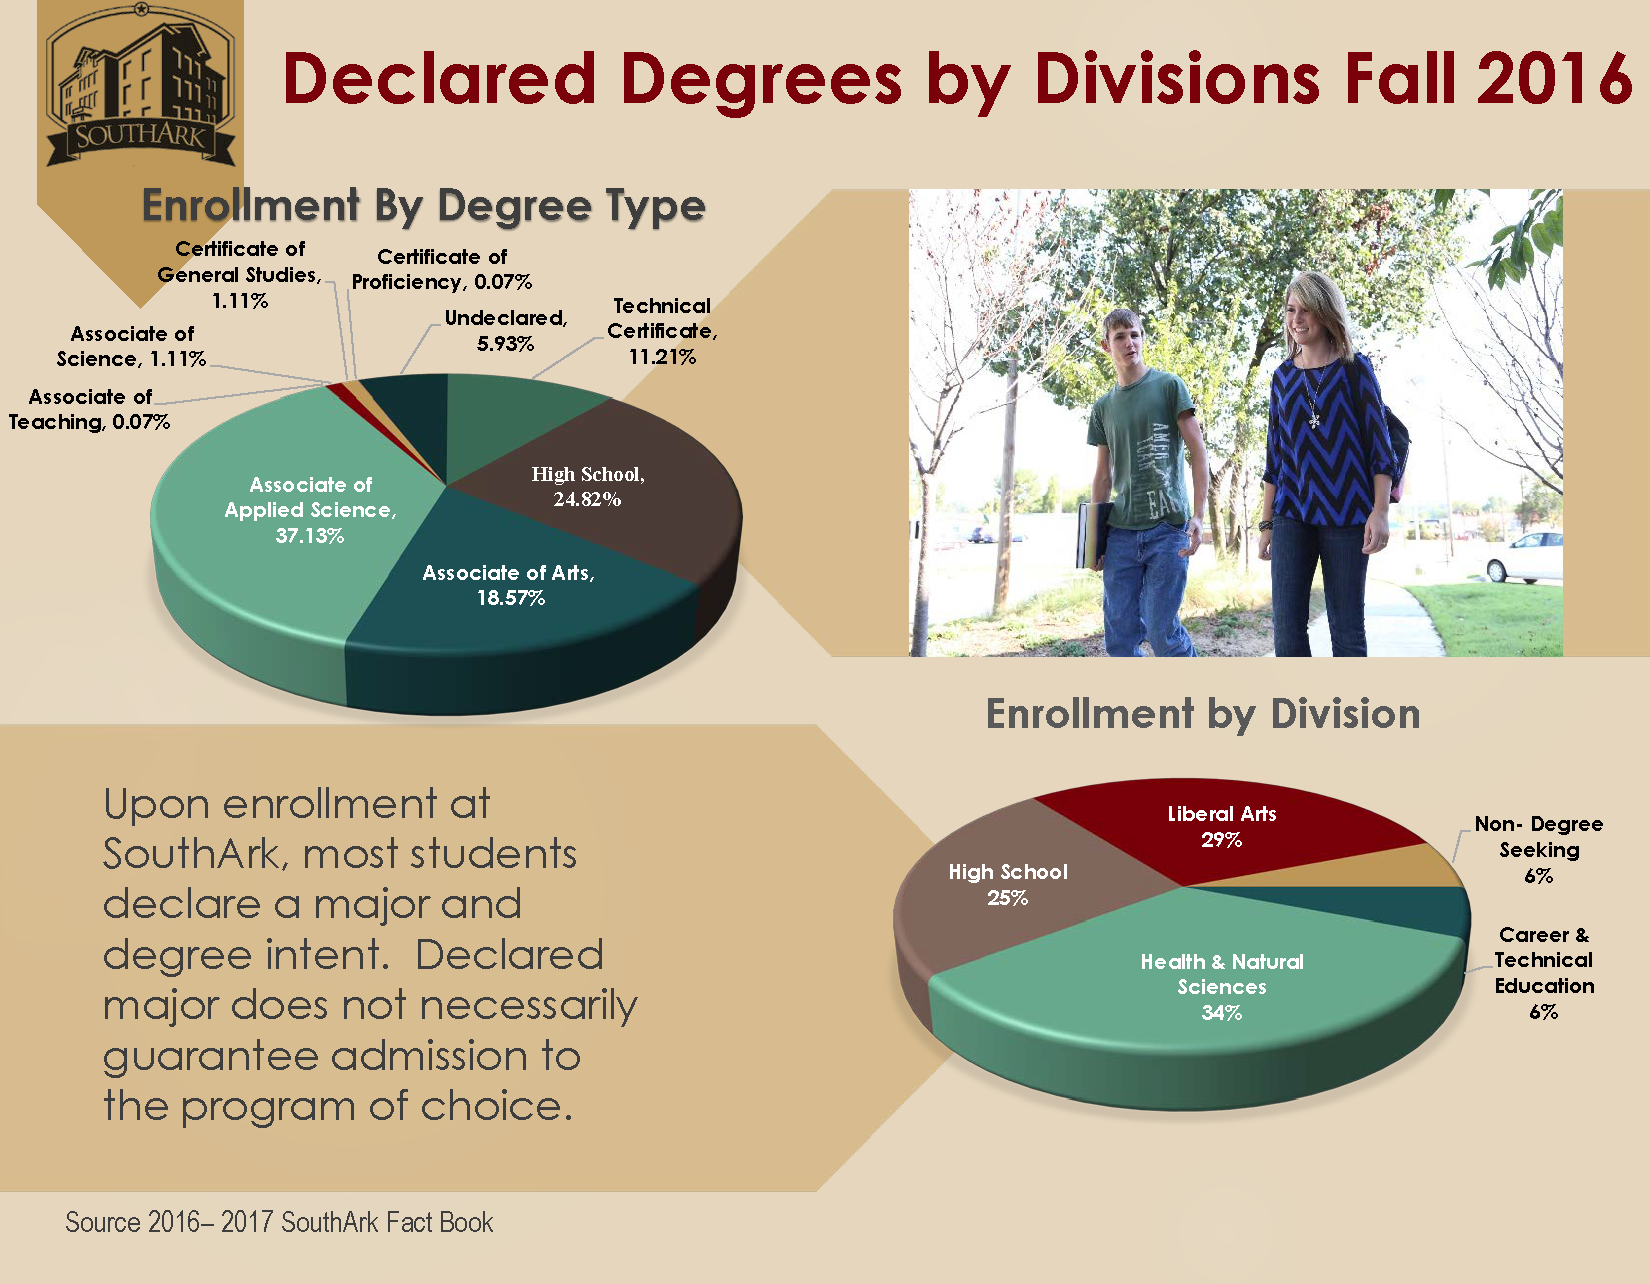 Declared Degrees by Divisions Fall 2016